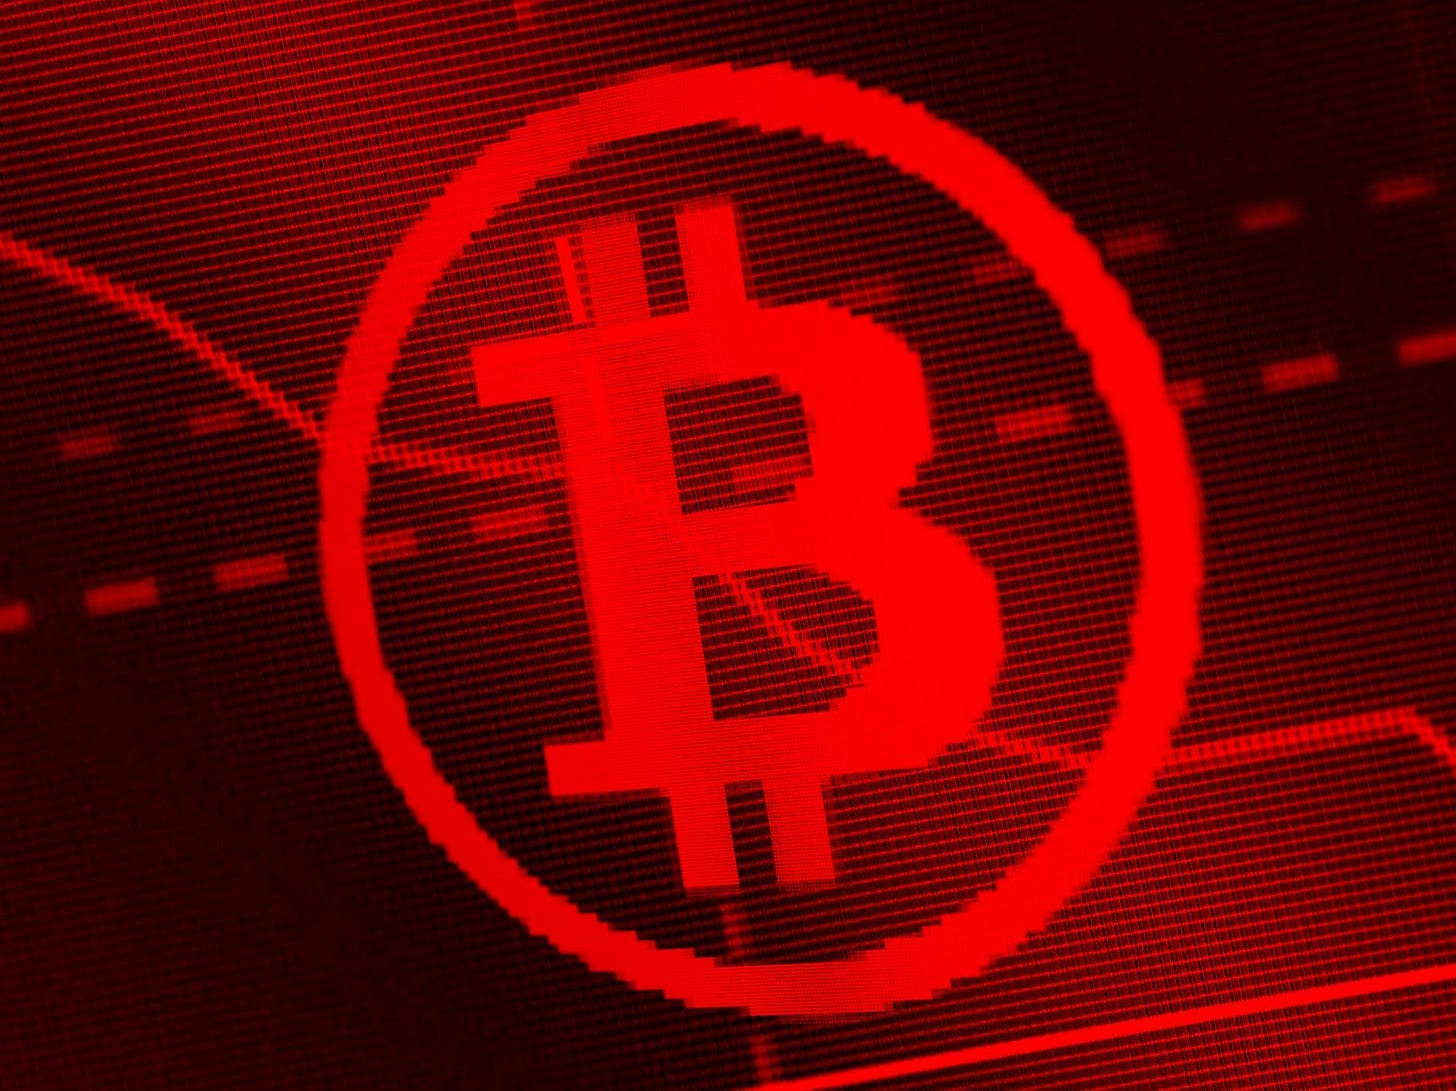 Bitcoin plummets $20 billion in second bizarre price crash | The  Independent | The Independent